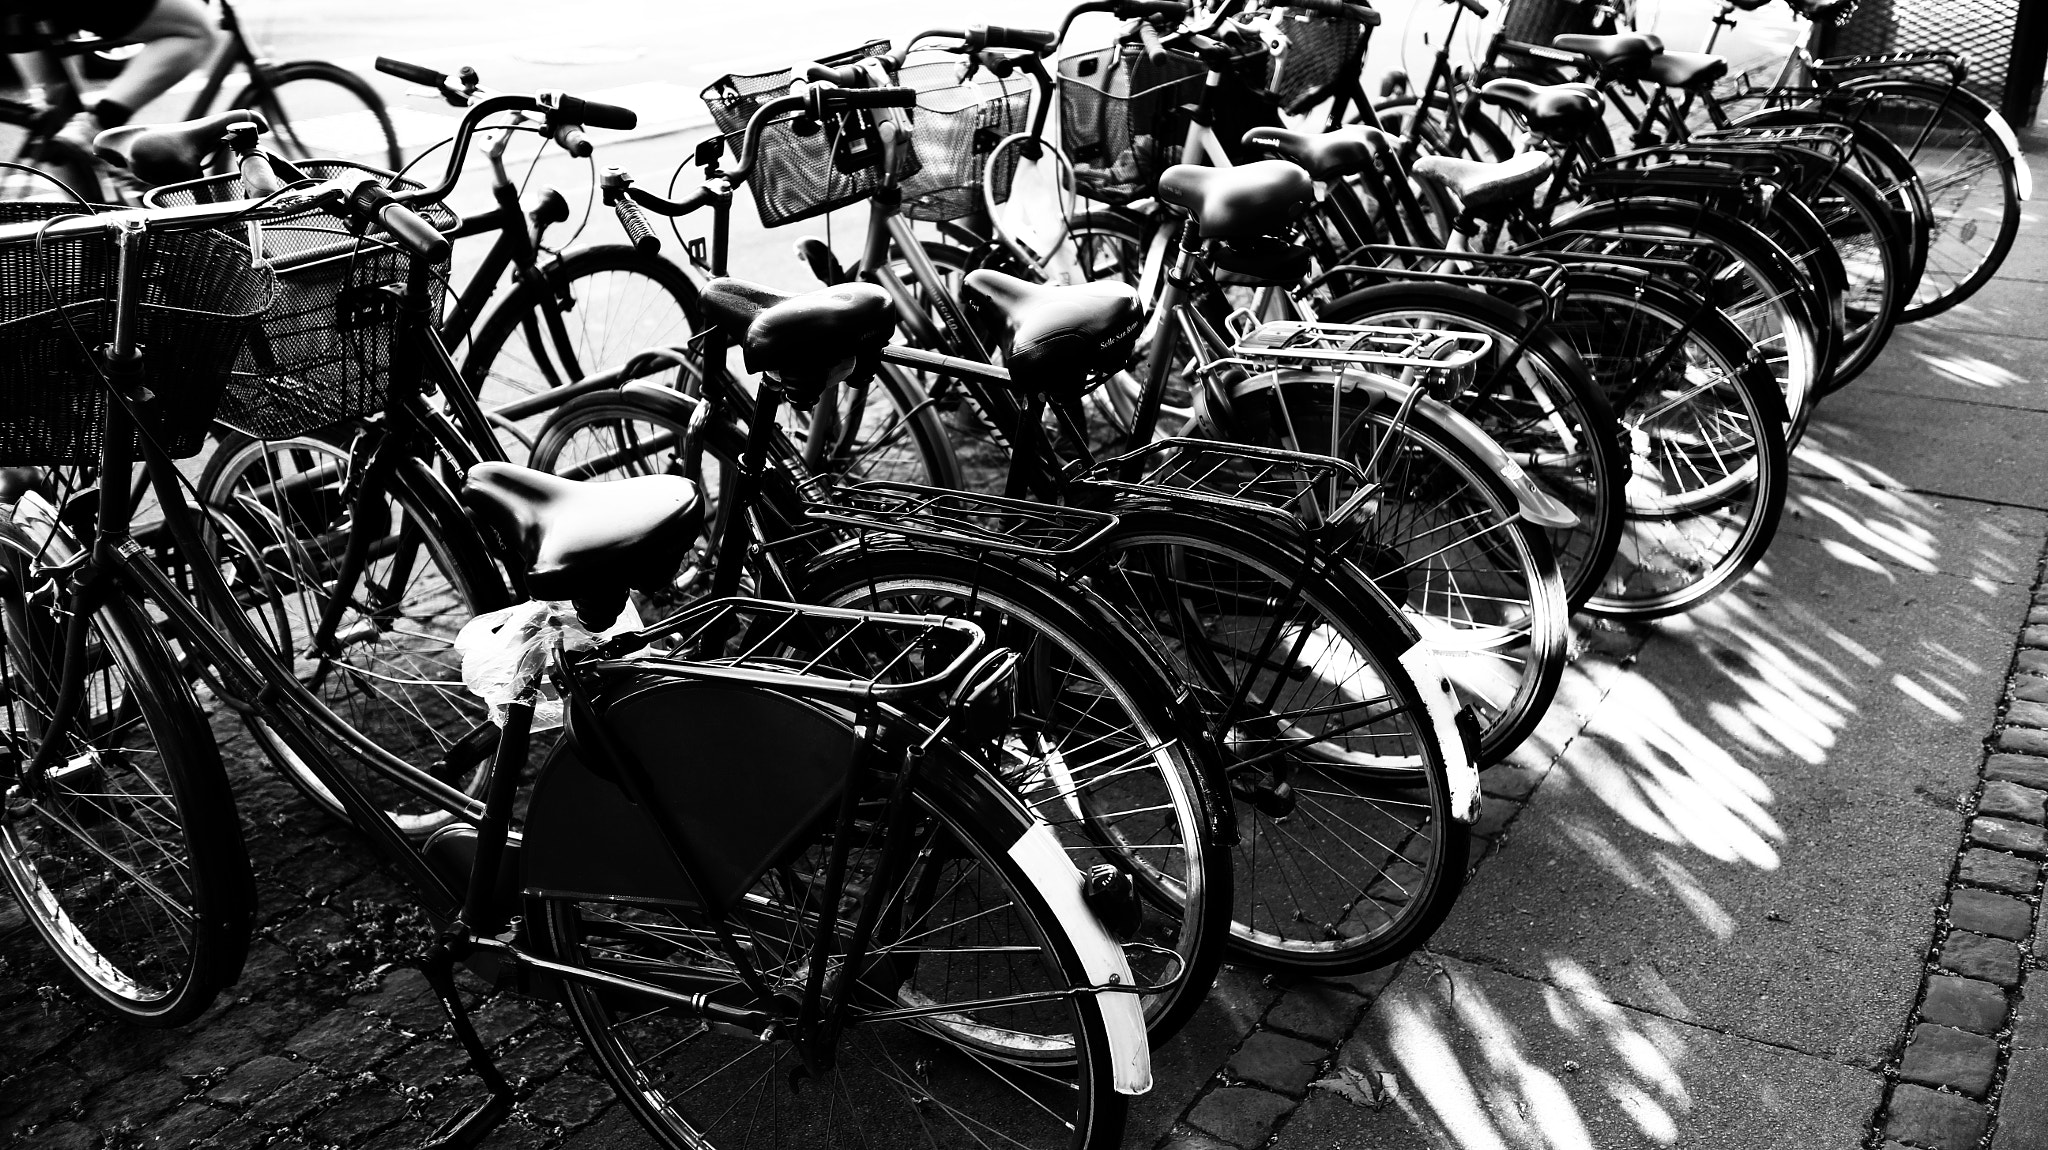 Photograph Bikes by Sir G on 500px